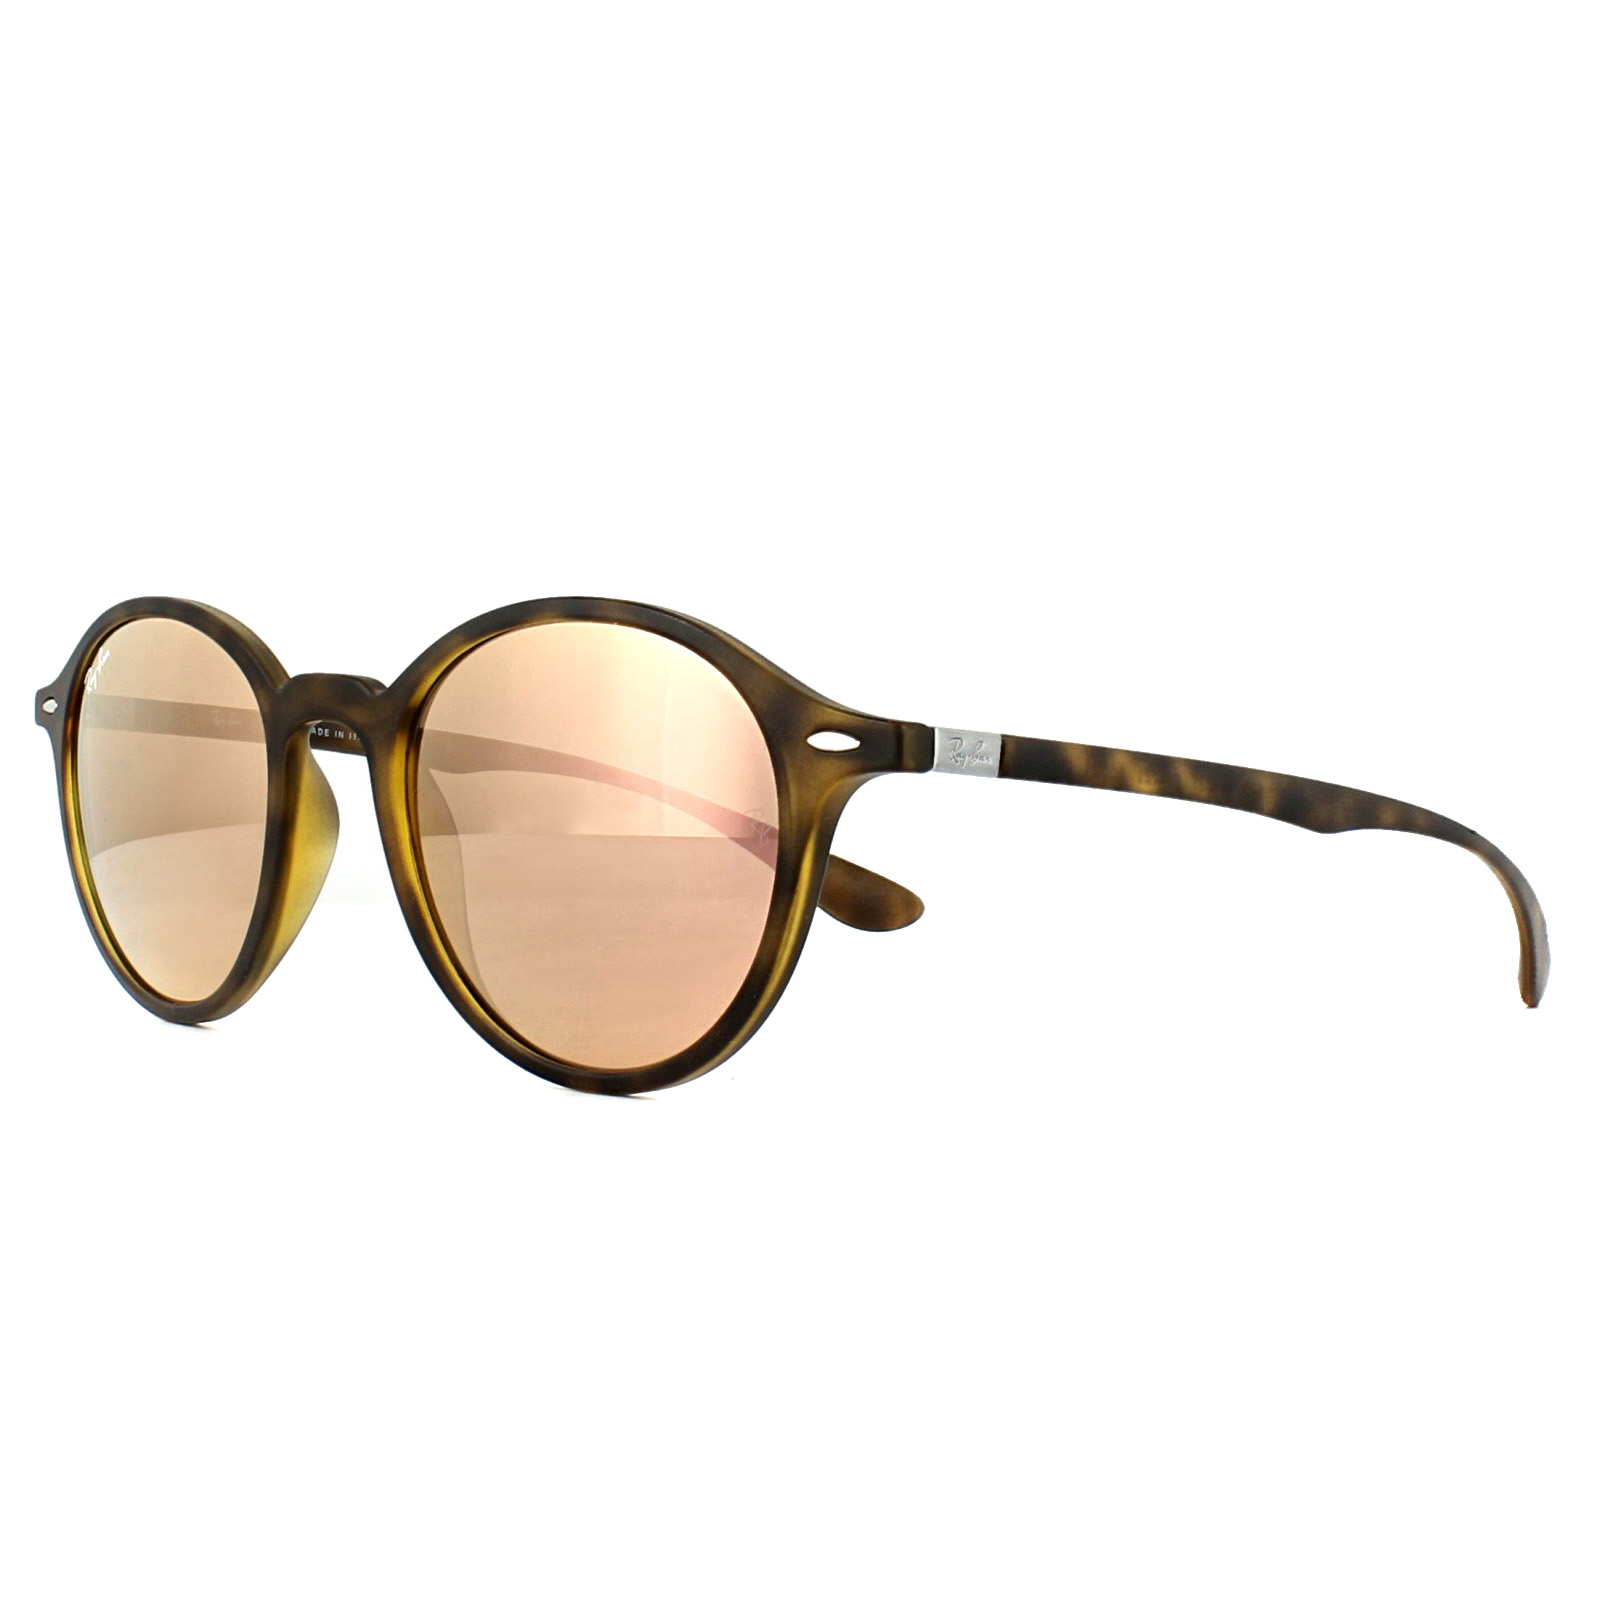 bbe3761f455 Sentinel Ray-Ban Sunglasses Round Liteforce 4237 894 Z2 Tortoise Copper  Mirror